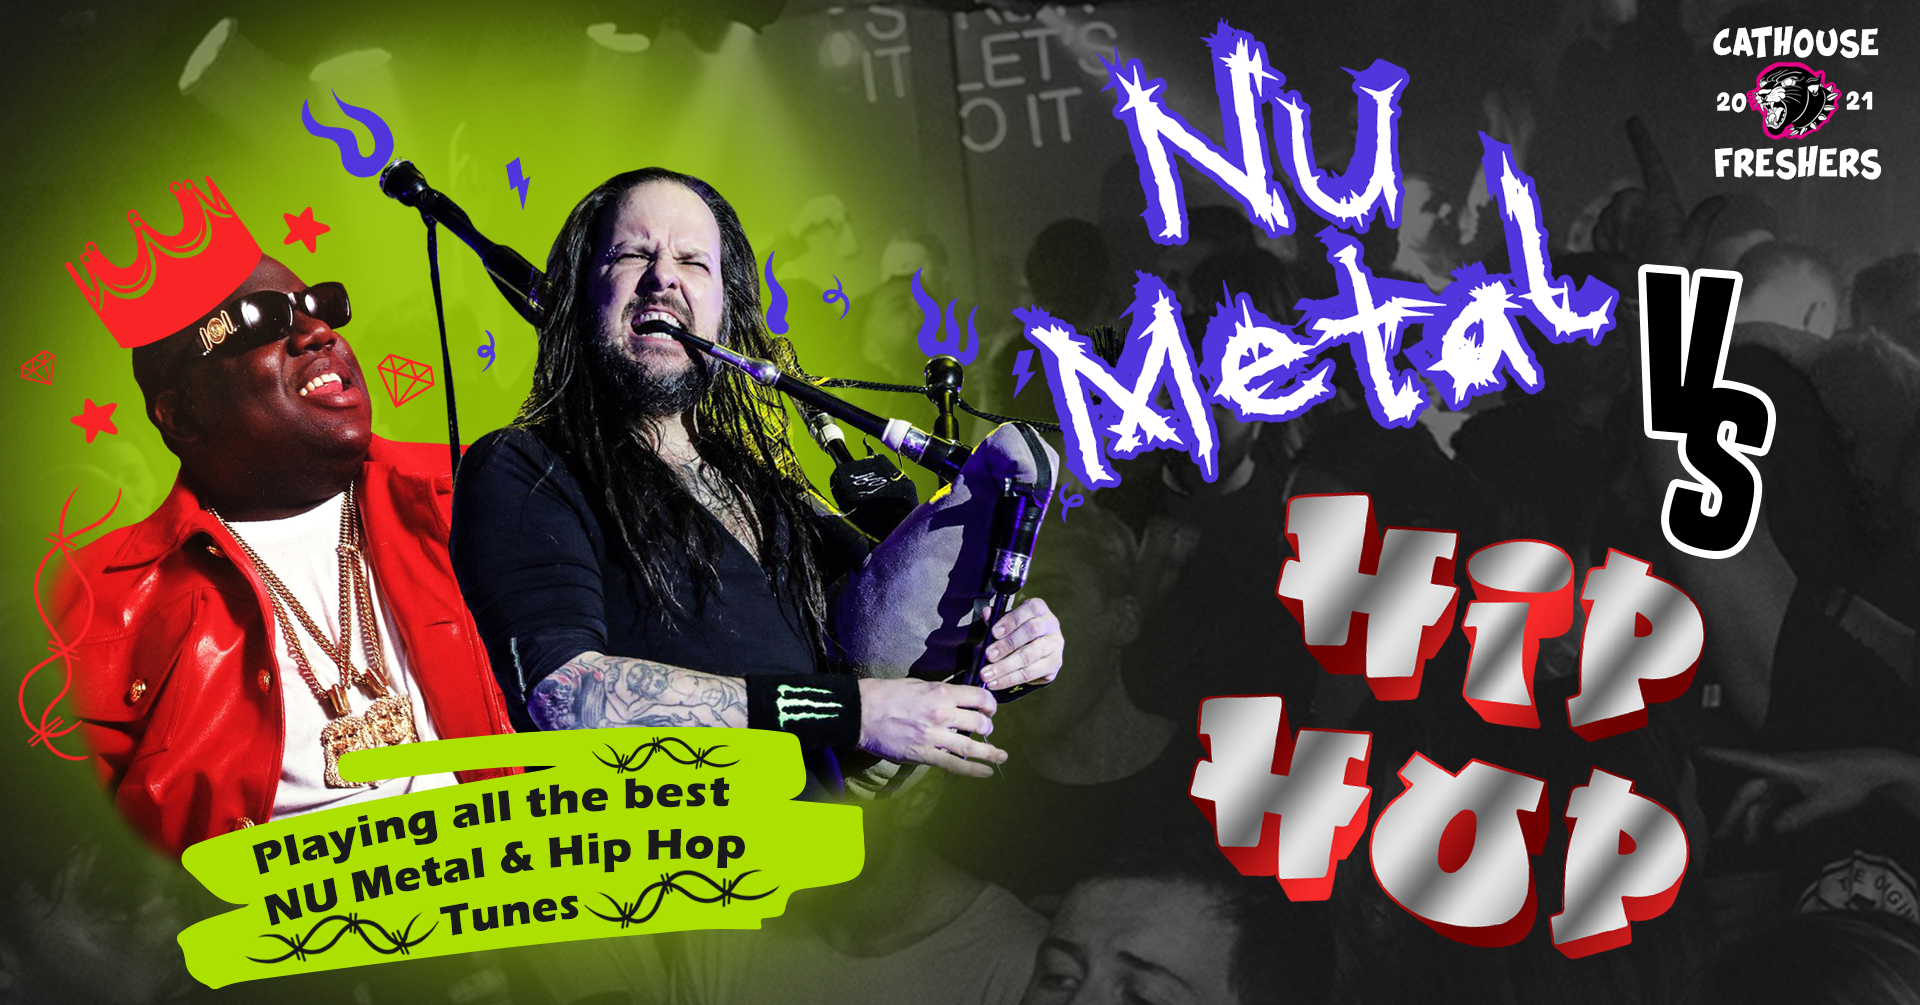 Graphic with text: Cathouse Freshers 2021   Nu Metal vs Hip Hop   Playing all the best Nu Metal and Hip Hop tunes